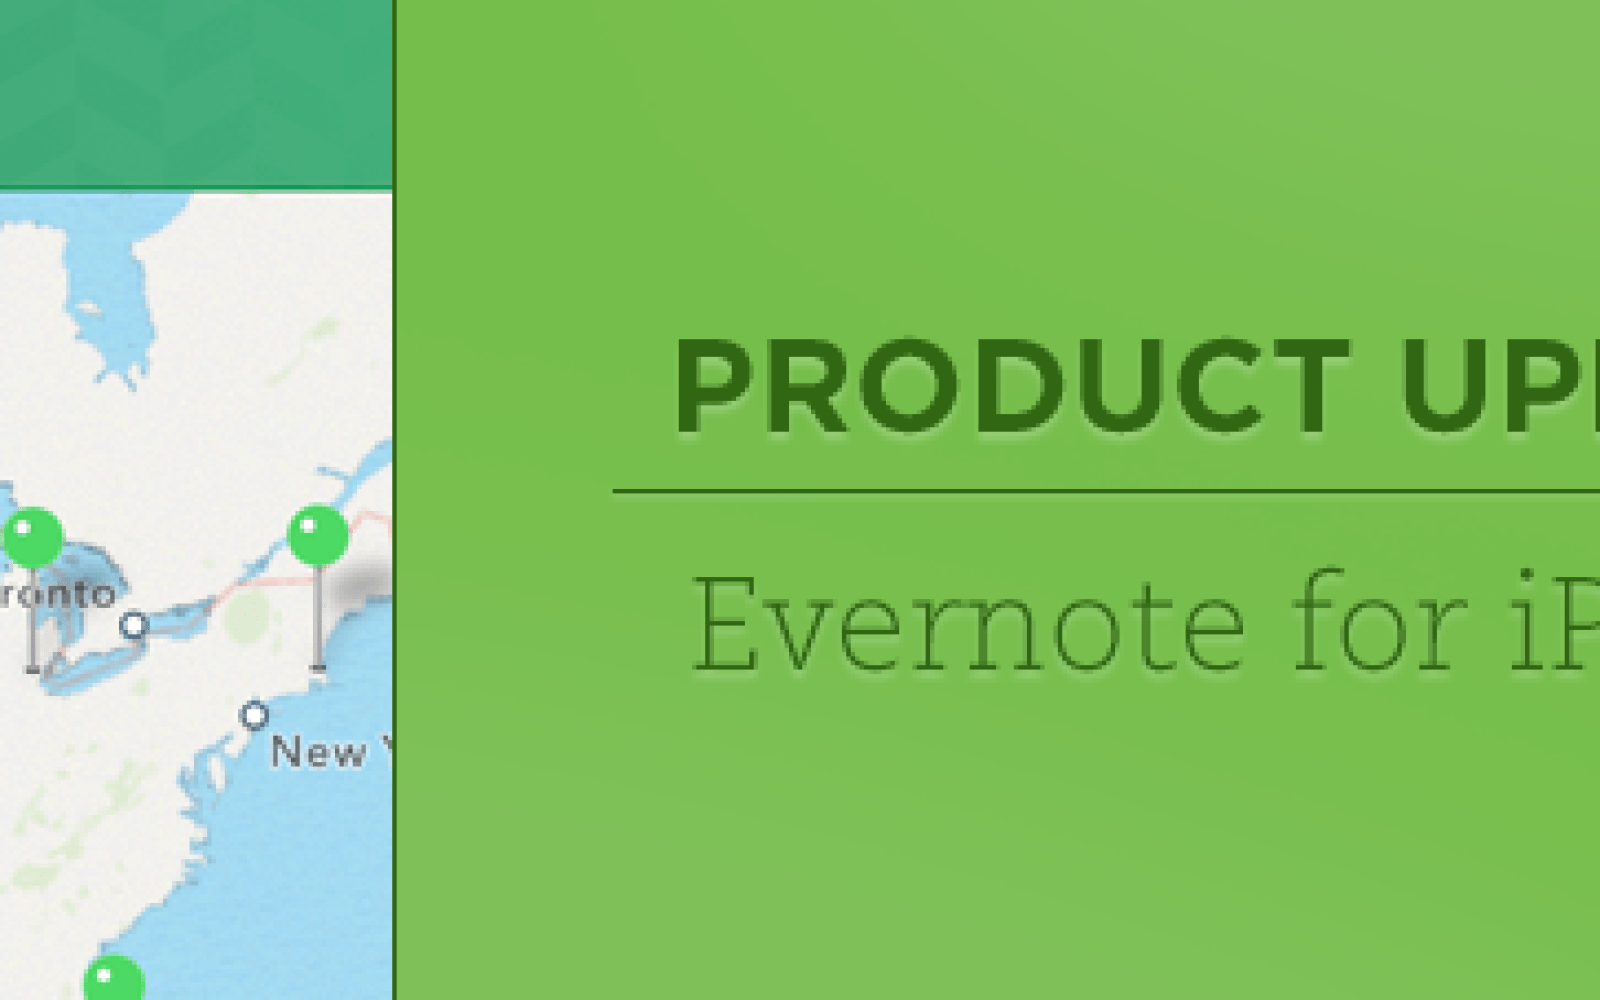 Evernote app updated with customized homescreen layout, mapping & improved saved searches